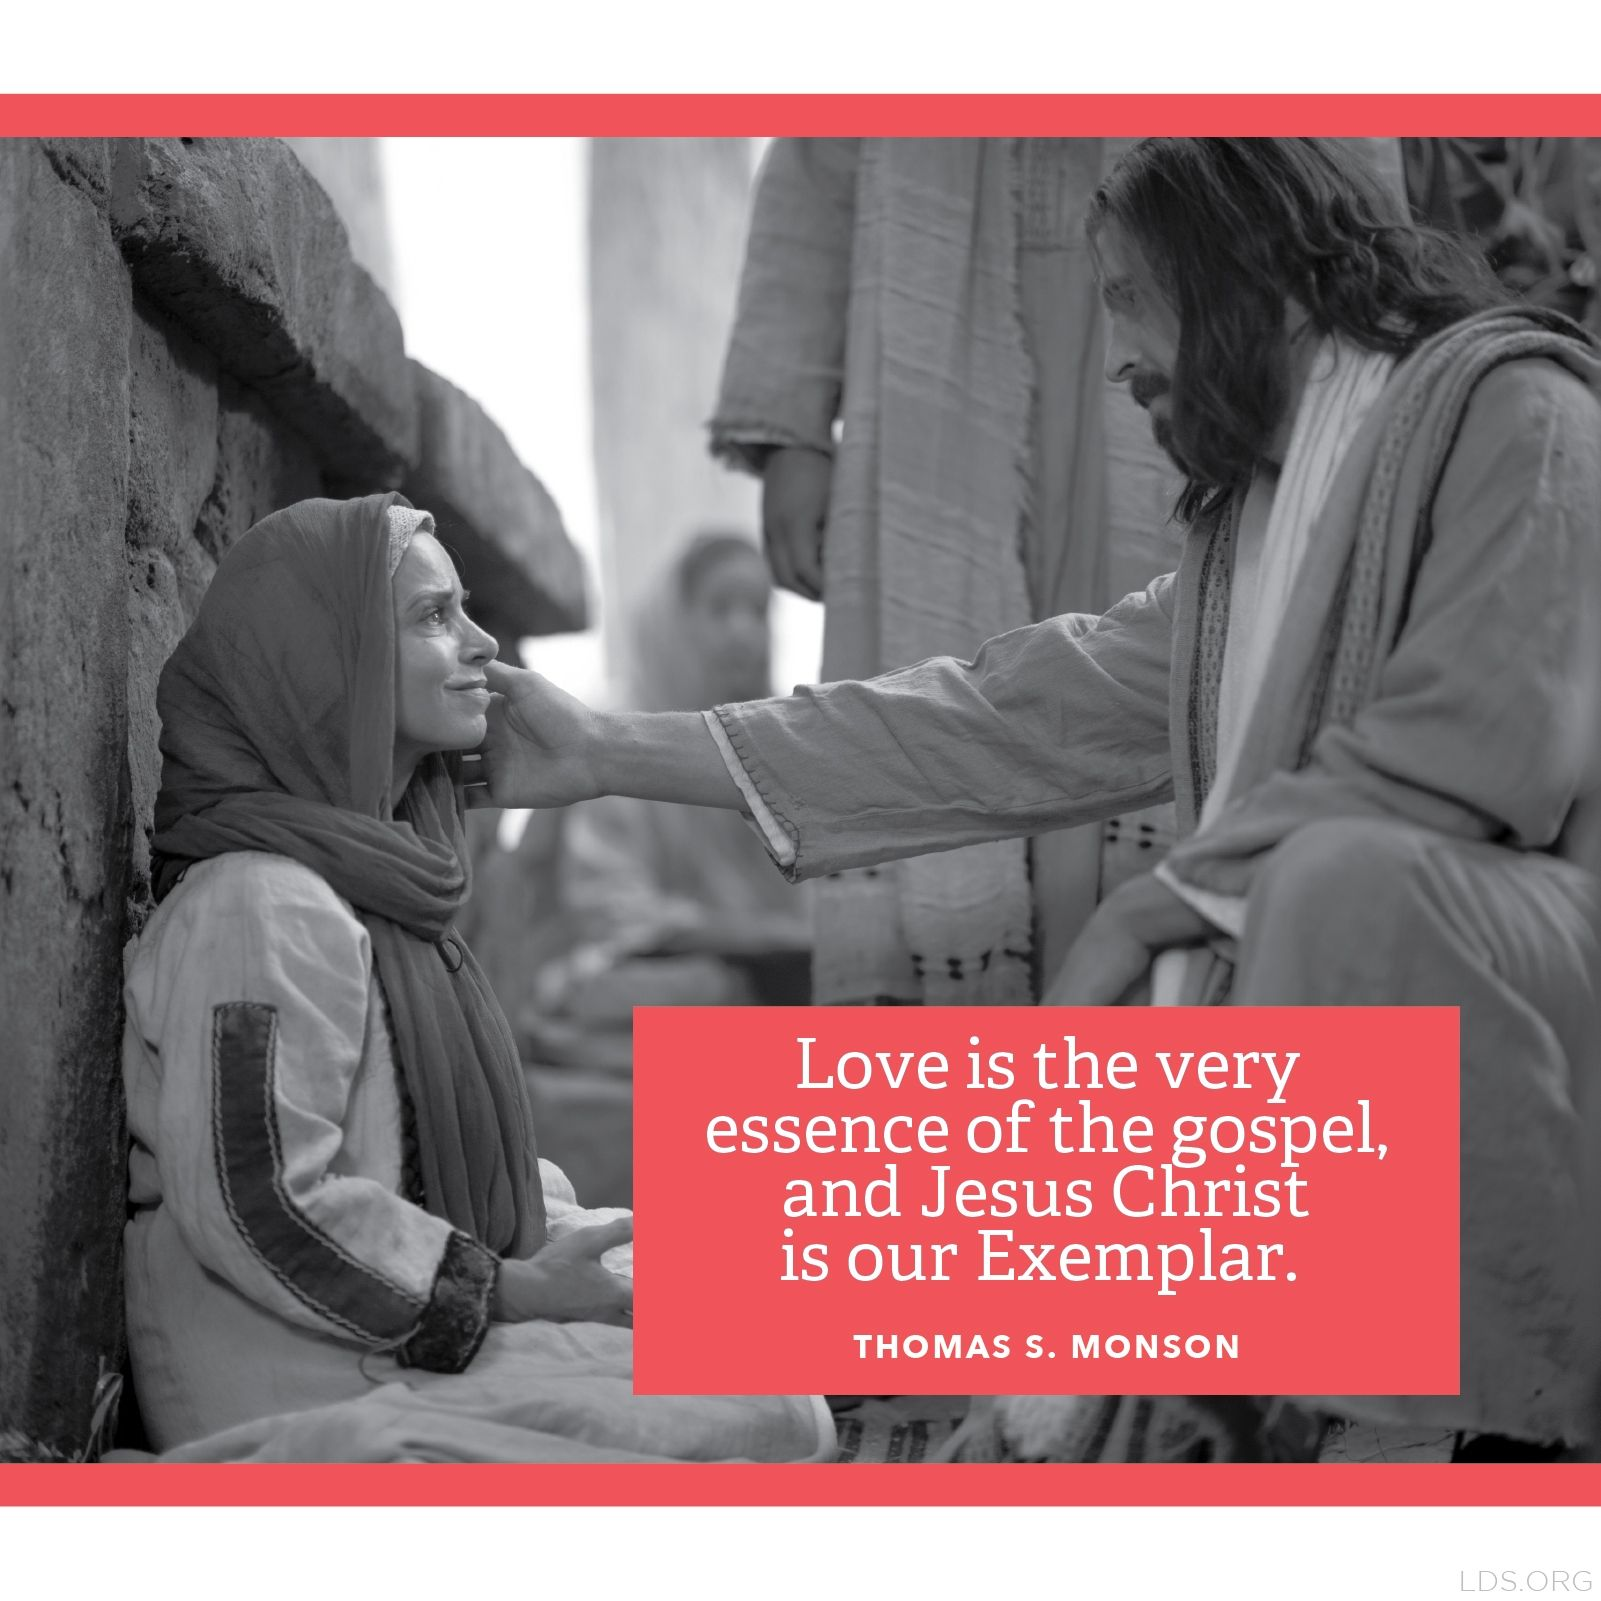 """""""Love is the very essence of the gospel, and Jesus Christ is our Exemplar.""""—President Thomas S. Monson, """"Love—the Essence of the Gospel."""""""